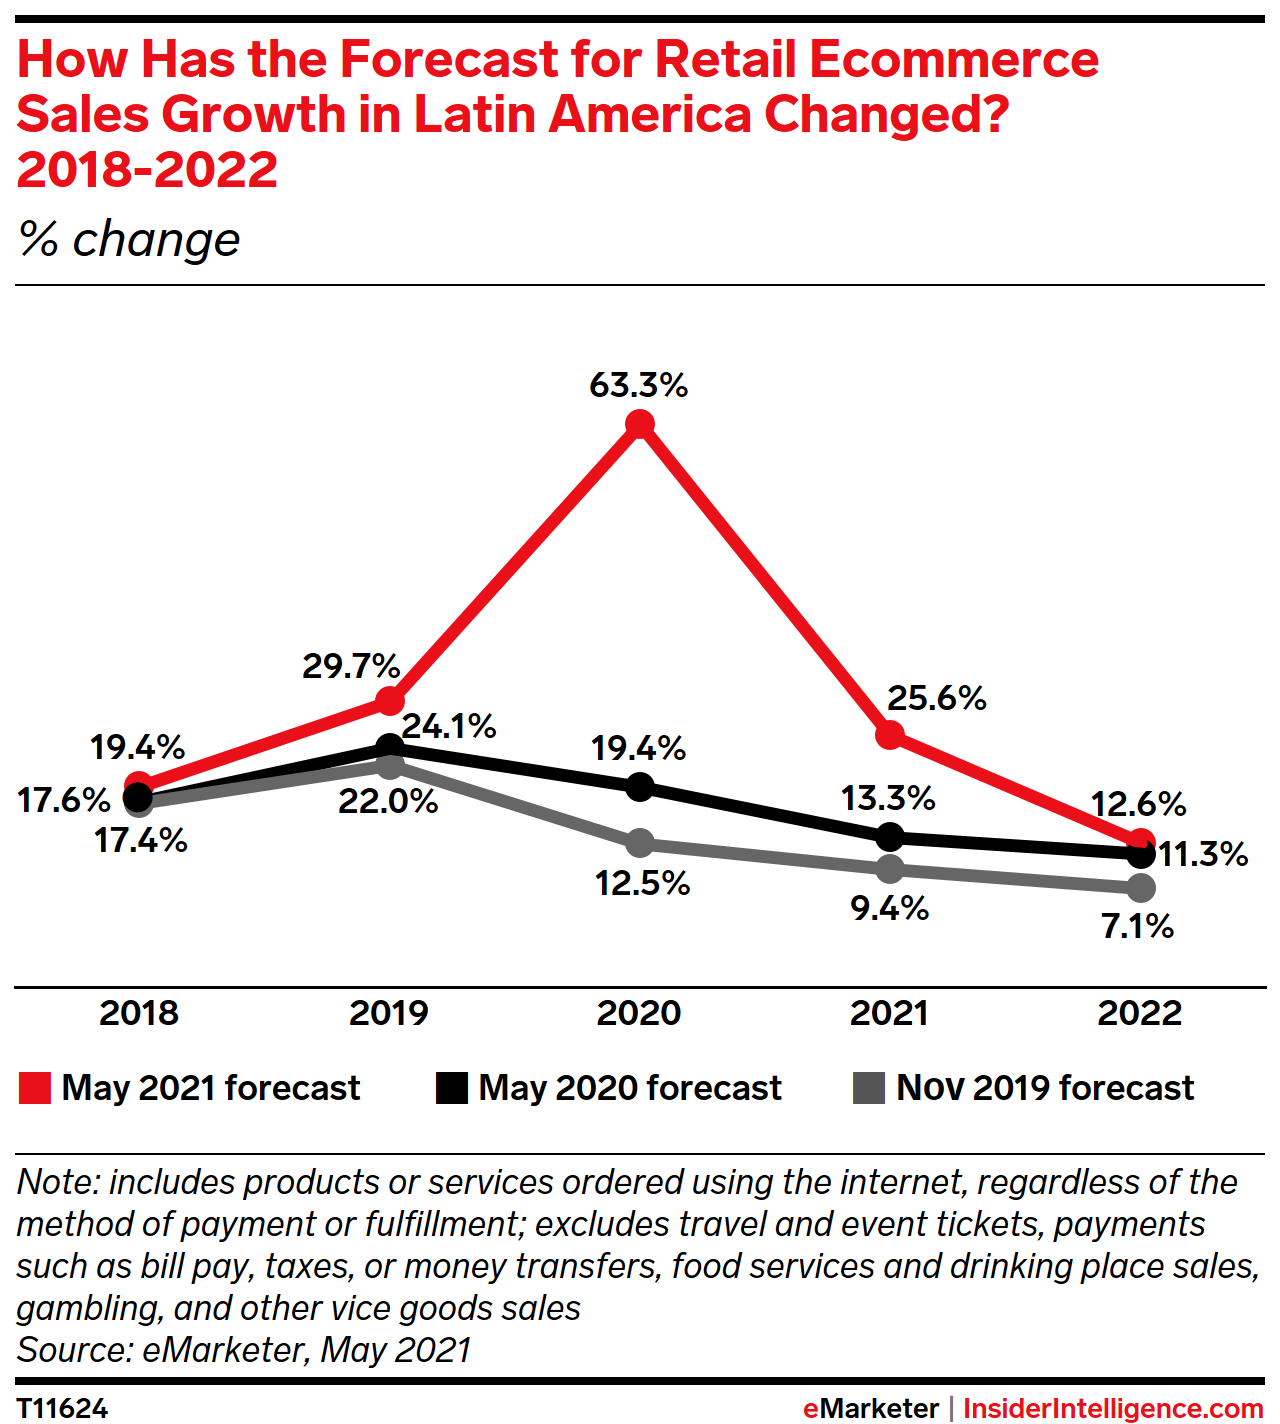 How Has the Forecast for Retail Ecommerce Sales Growth in Latin America Changed? 2018-2022 (% change)